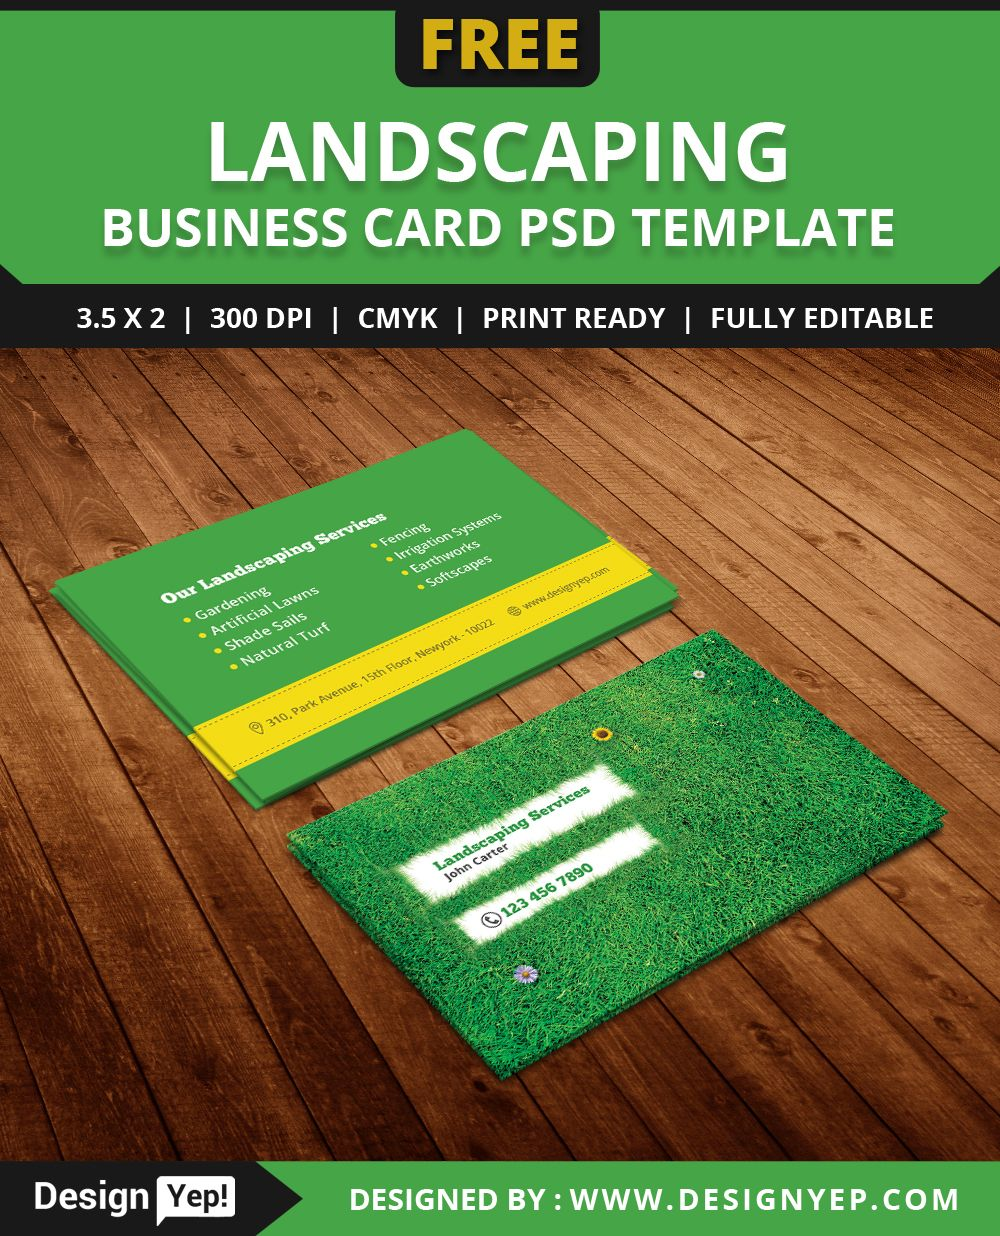 Free landscaping business card template psd free business card free landscaping business card template psd accmission Image collections